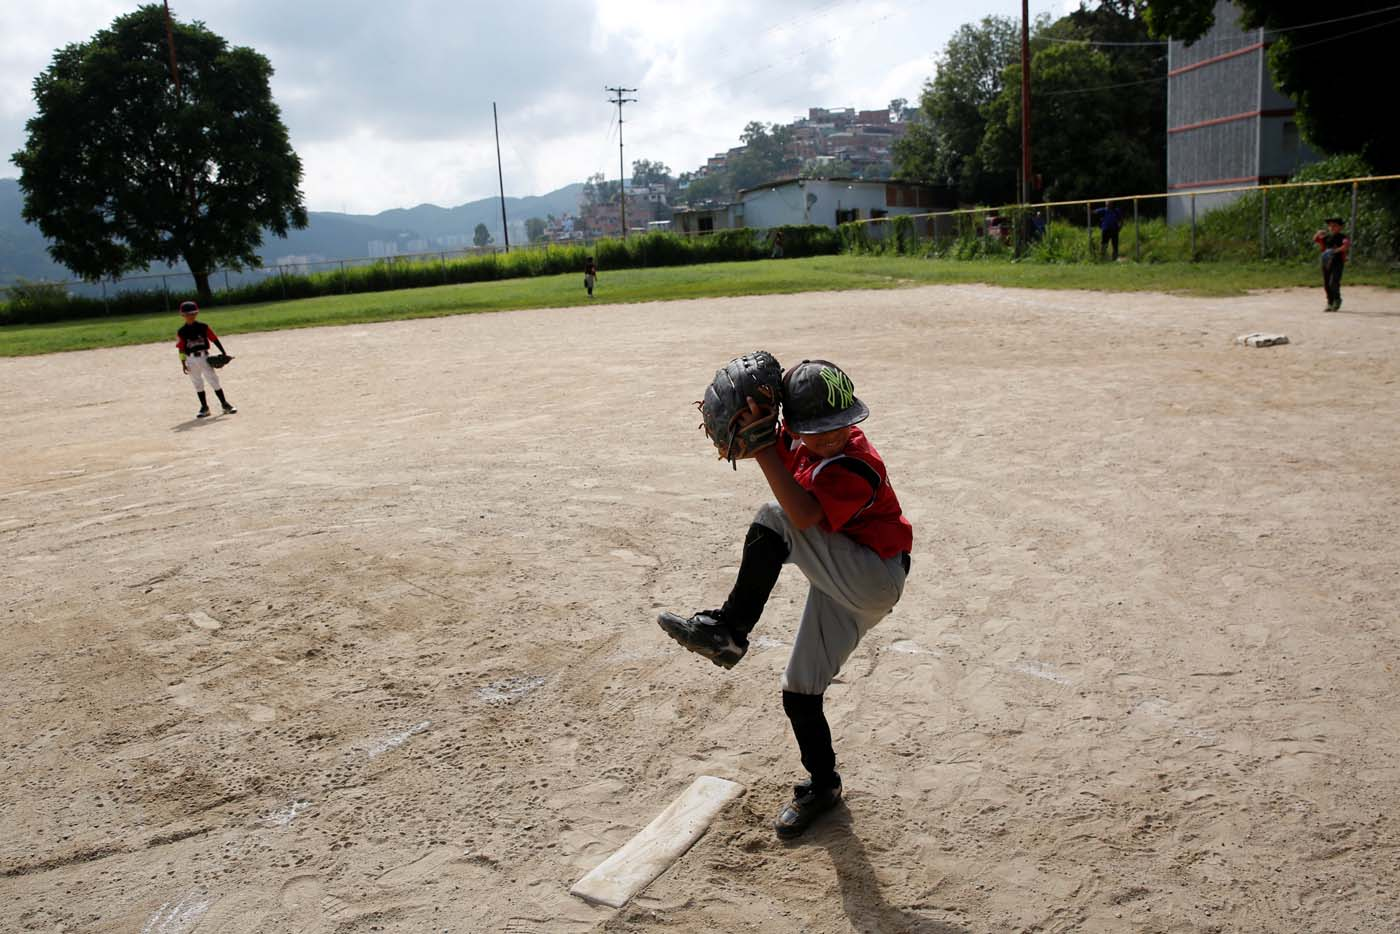 Xavier Indriago (C) pitches during a baseball championship in Caracas, Venezuela August 24, 2017. Picture taken August 24, 2017. REUTERS/Carlos Garcia Rawlins